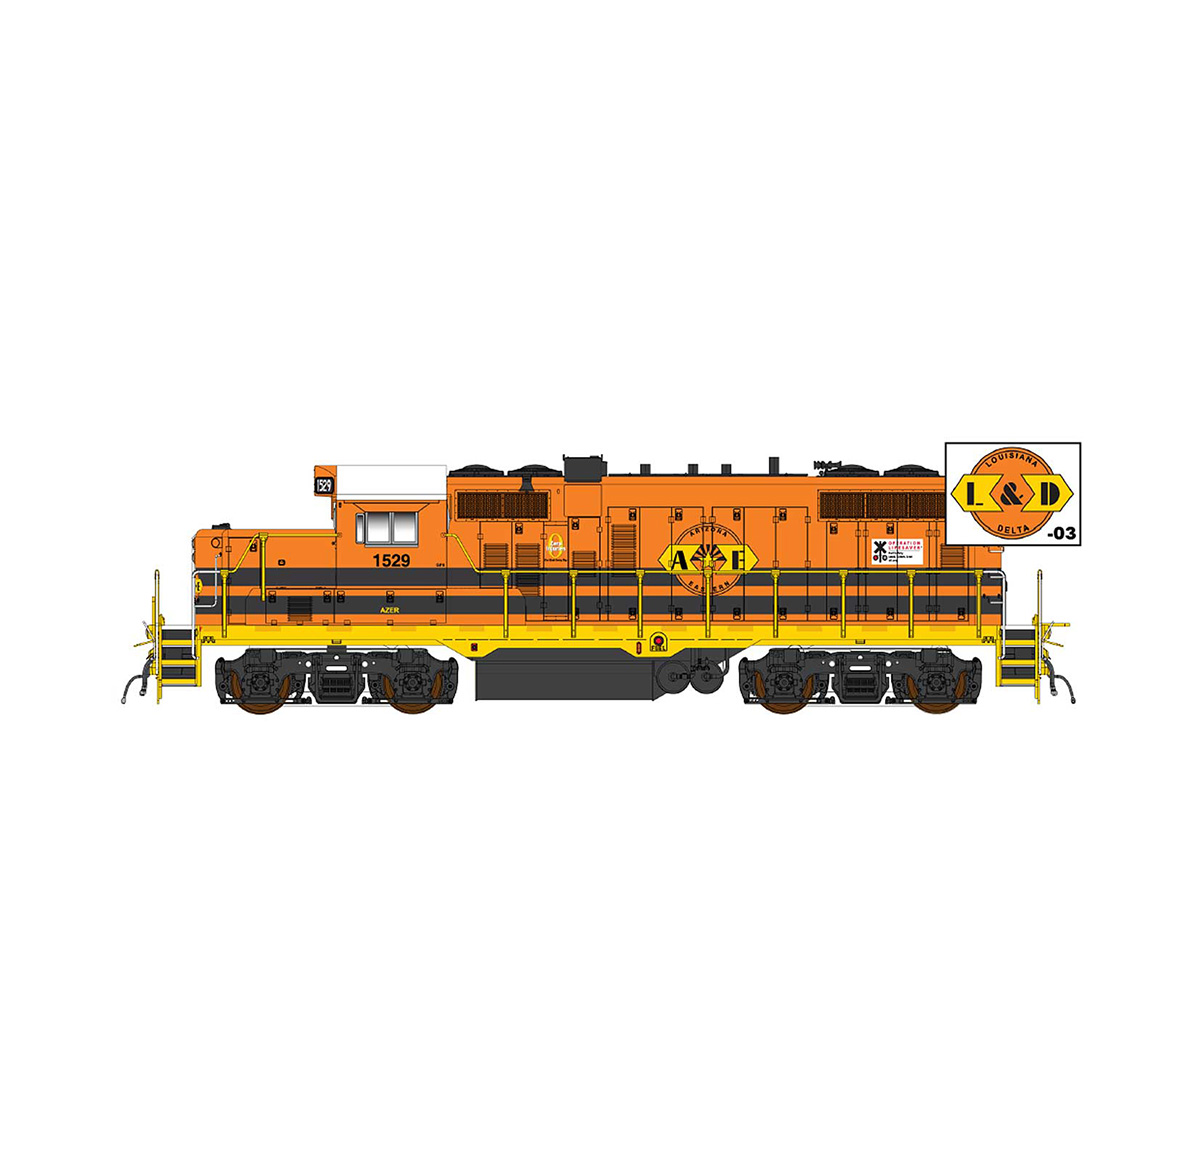 InterMountain 49871-03, HO EMD GP10 Paducah DCC, G&W/L&D #1850